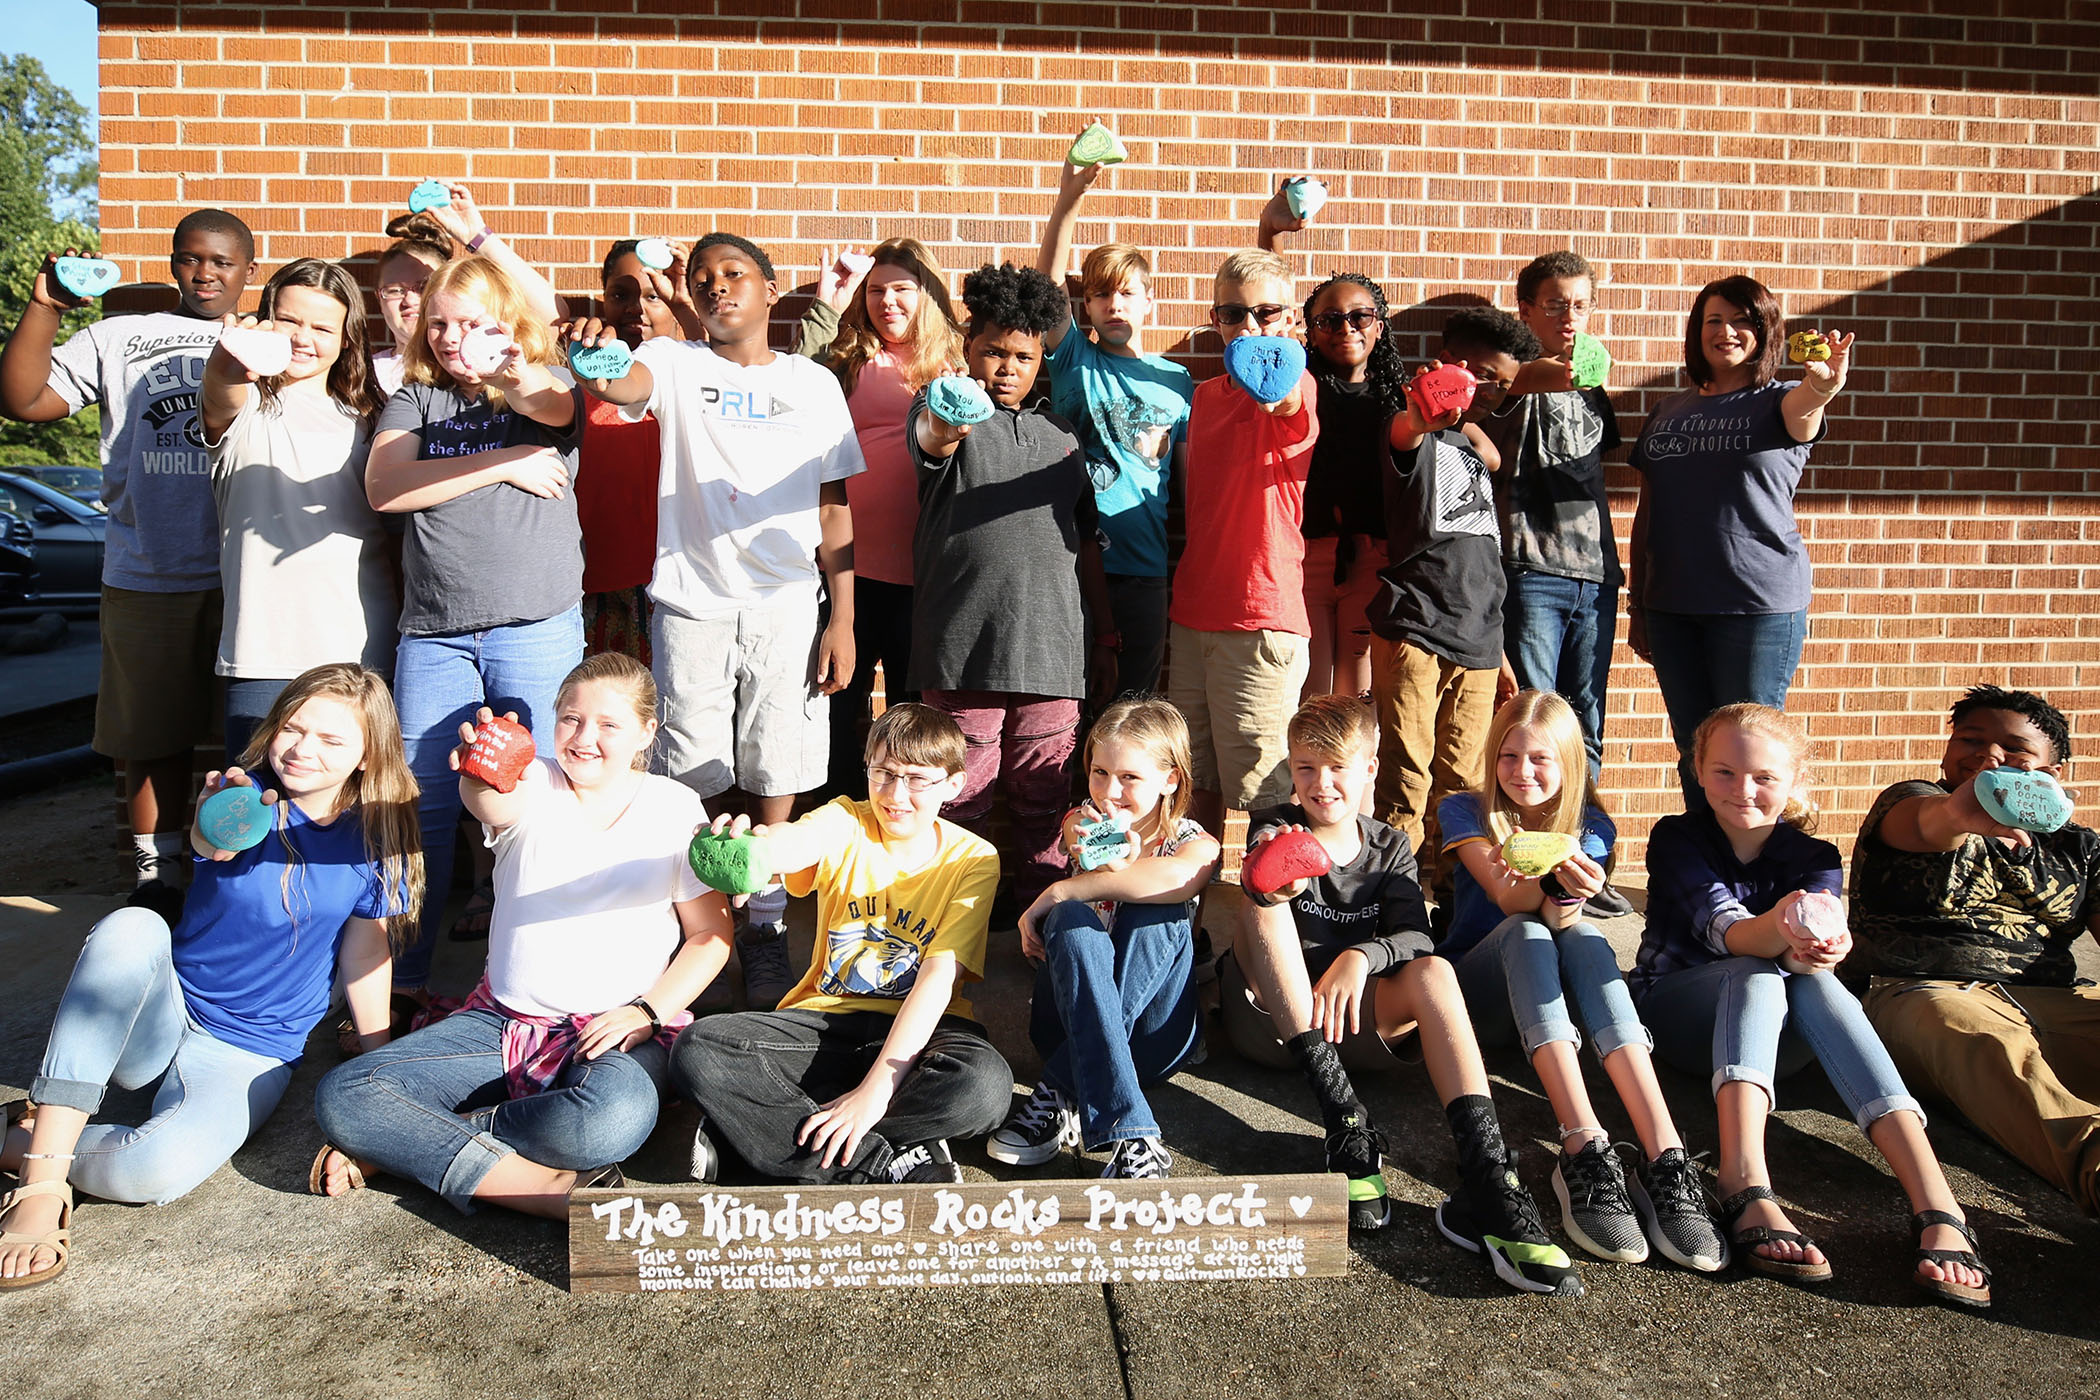 Sixth graders stand with their Kindness Rocks Project.